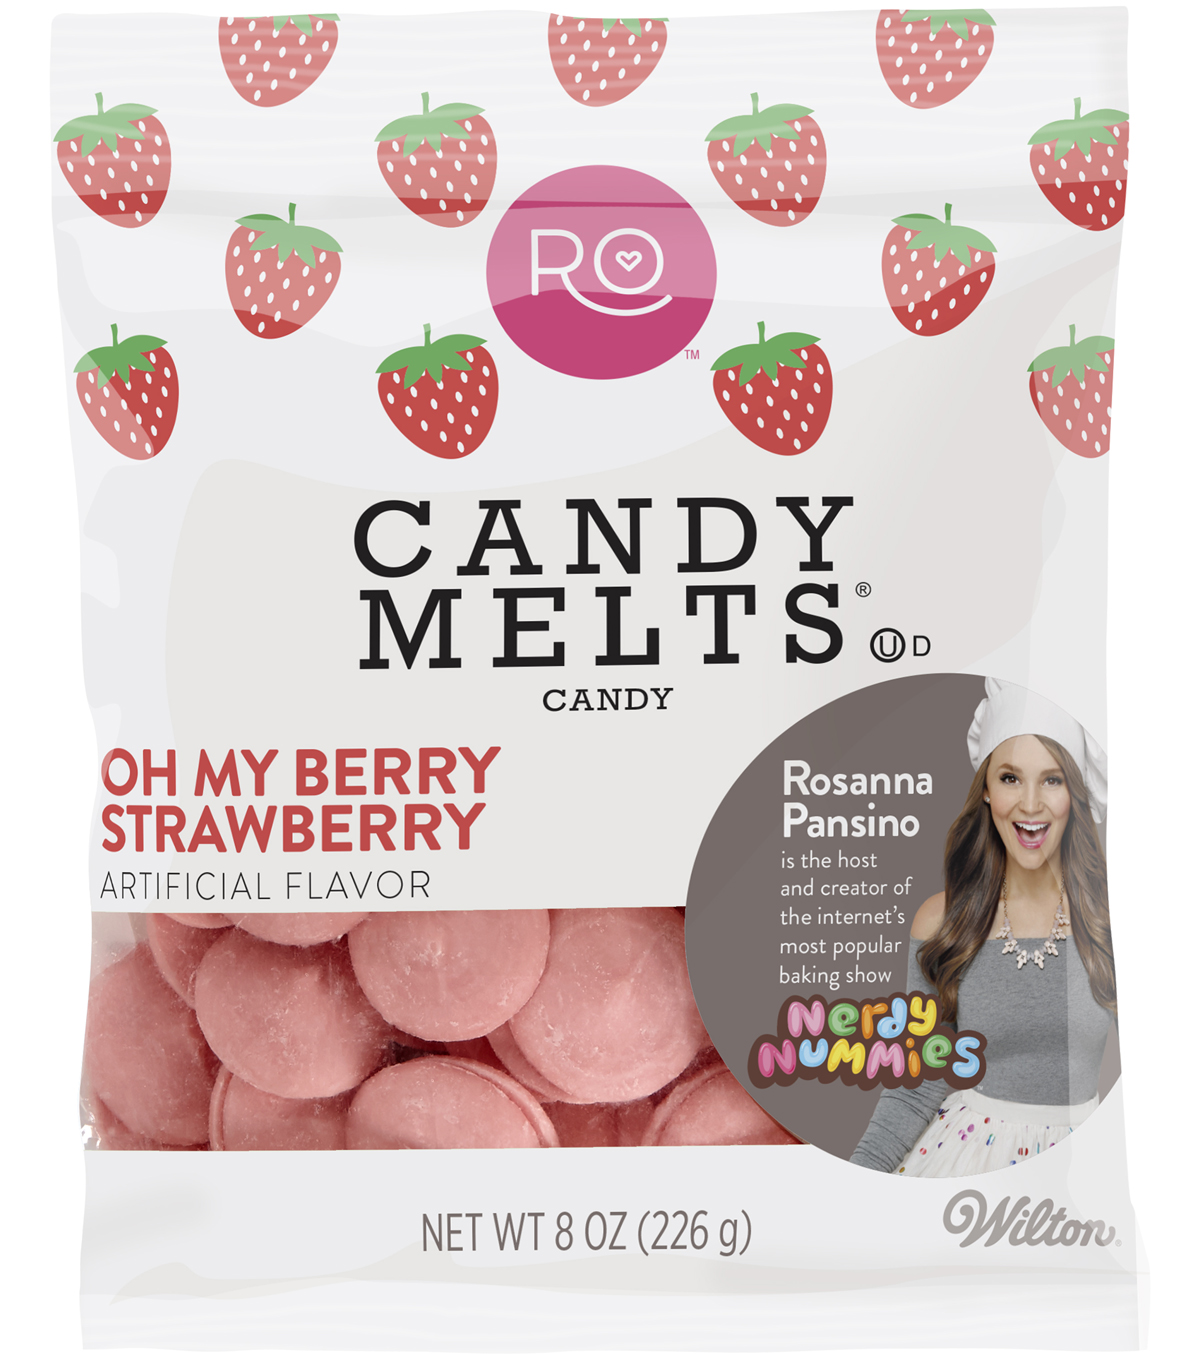 Rosanna Pansino By Wilton 8oz Candy Melts Candy-Oh My Berry Strawberry